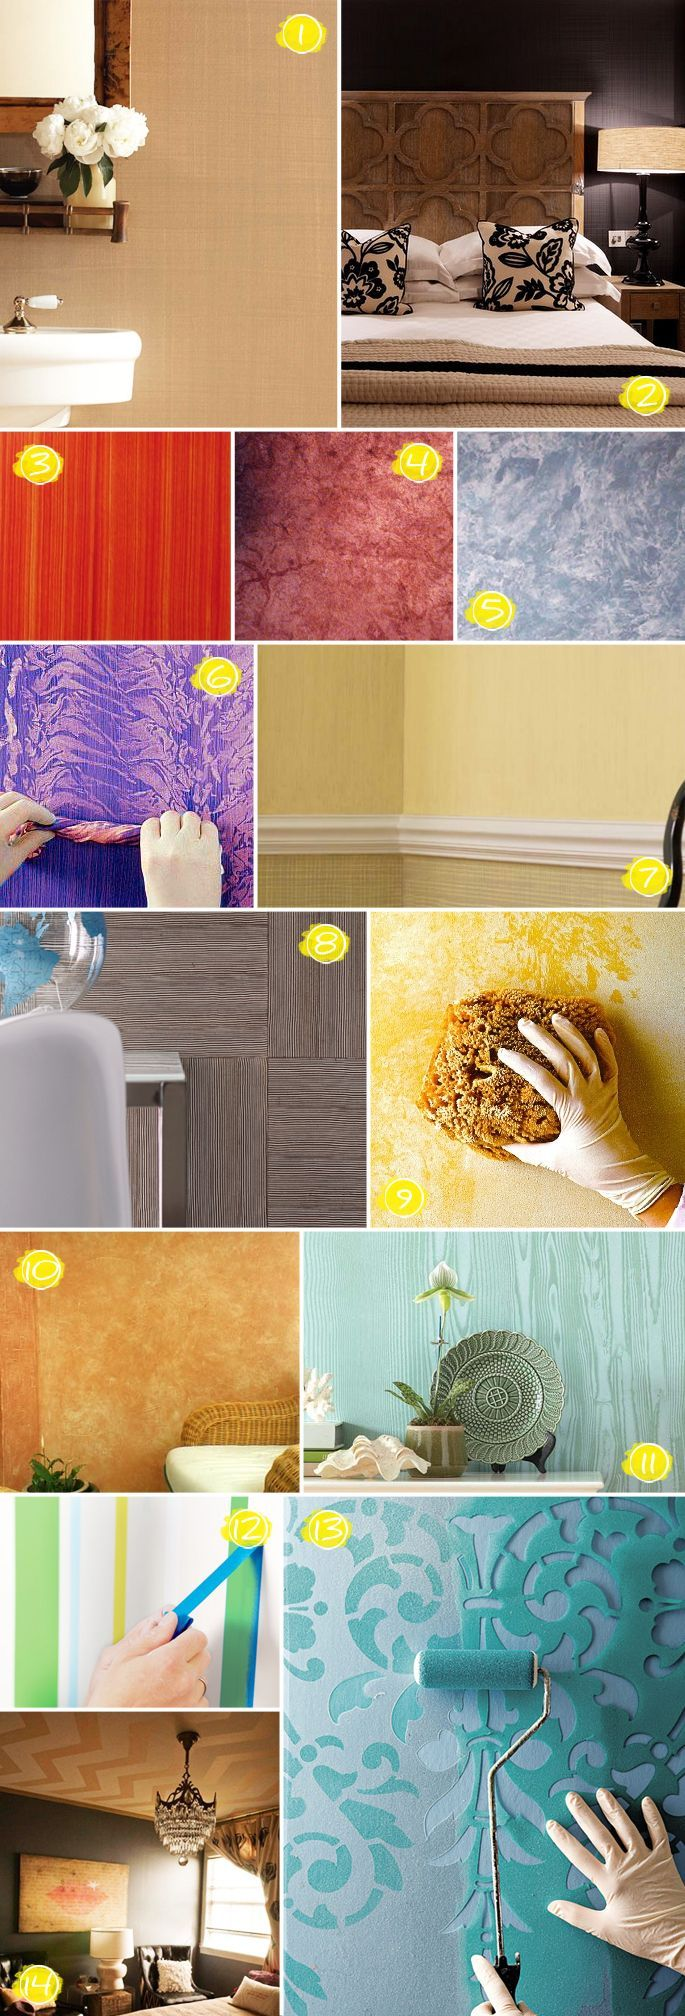 Textured Wall Painting Ideas: From Faux Wood to Linen Effects ...